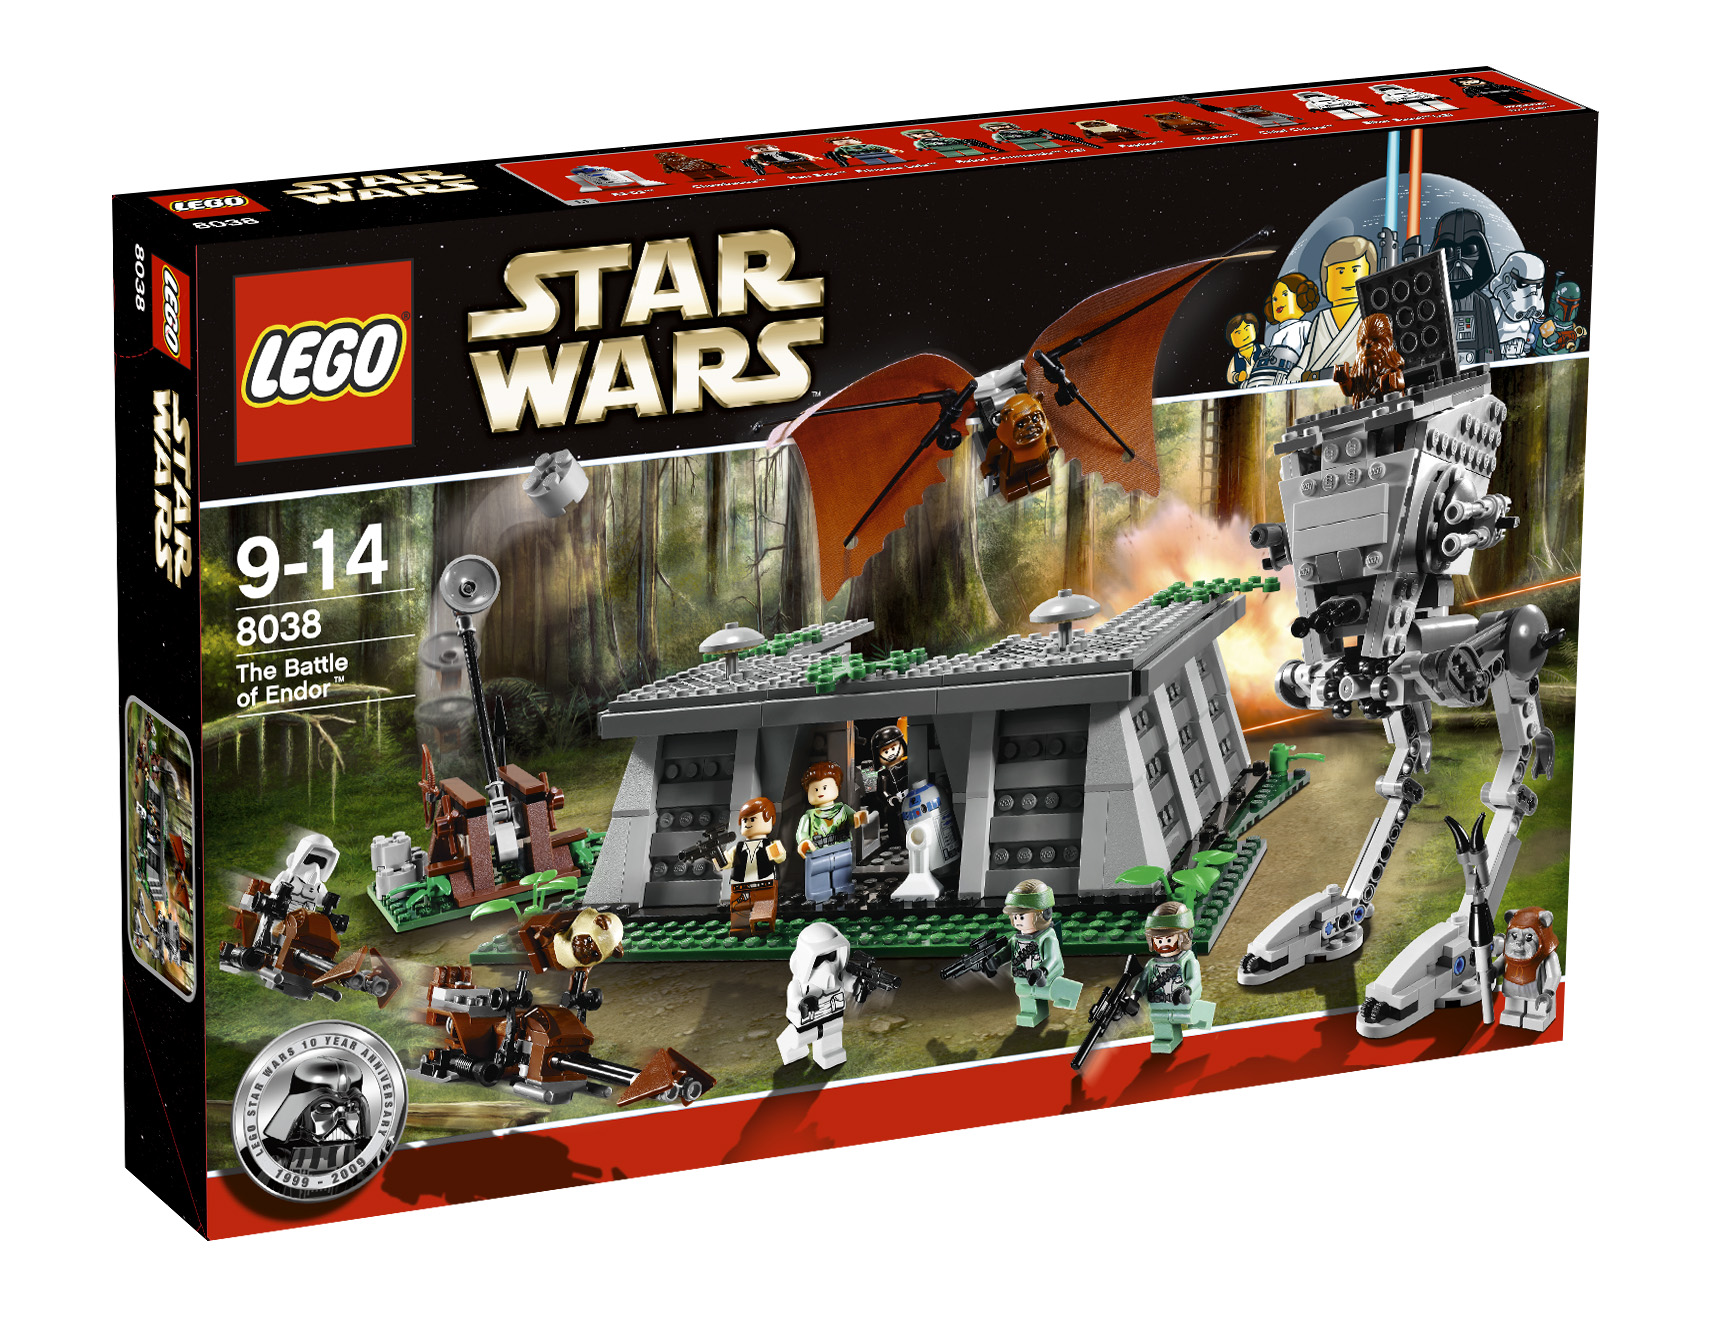 Star Wars Lego Toys : Some new nd half star wars lego sets toywiz and